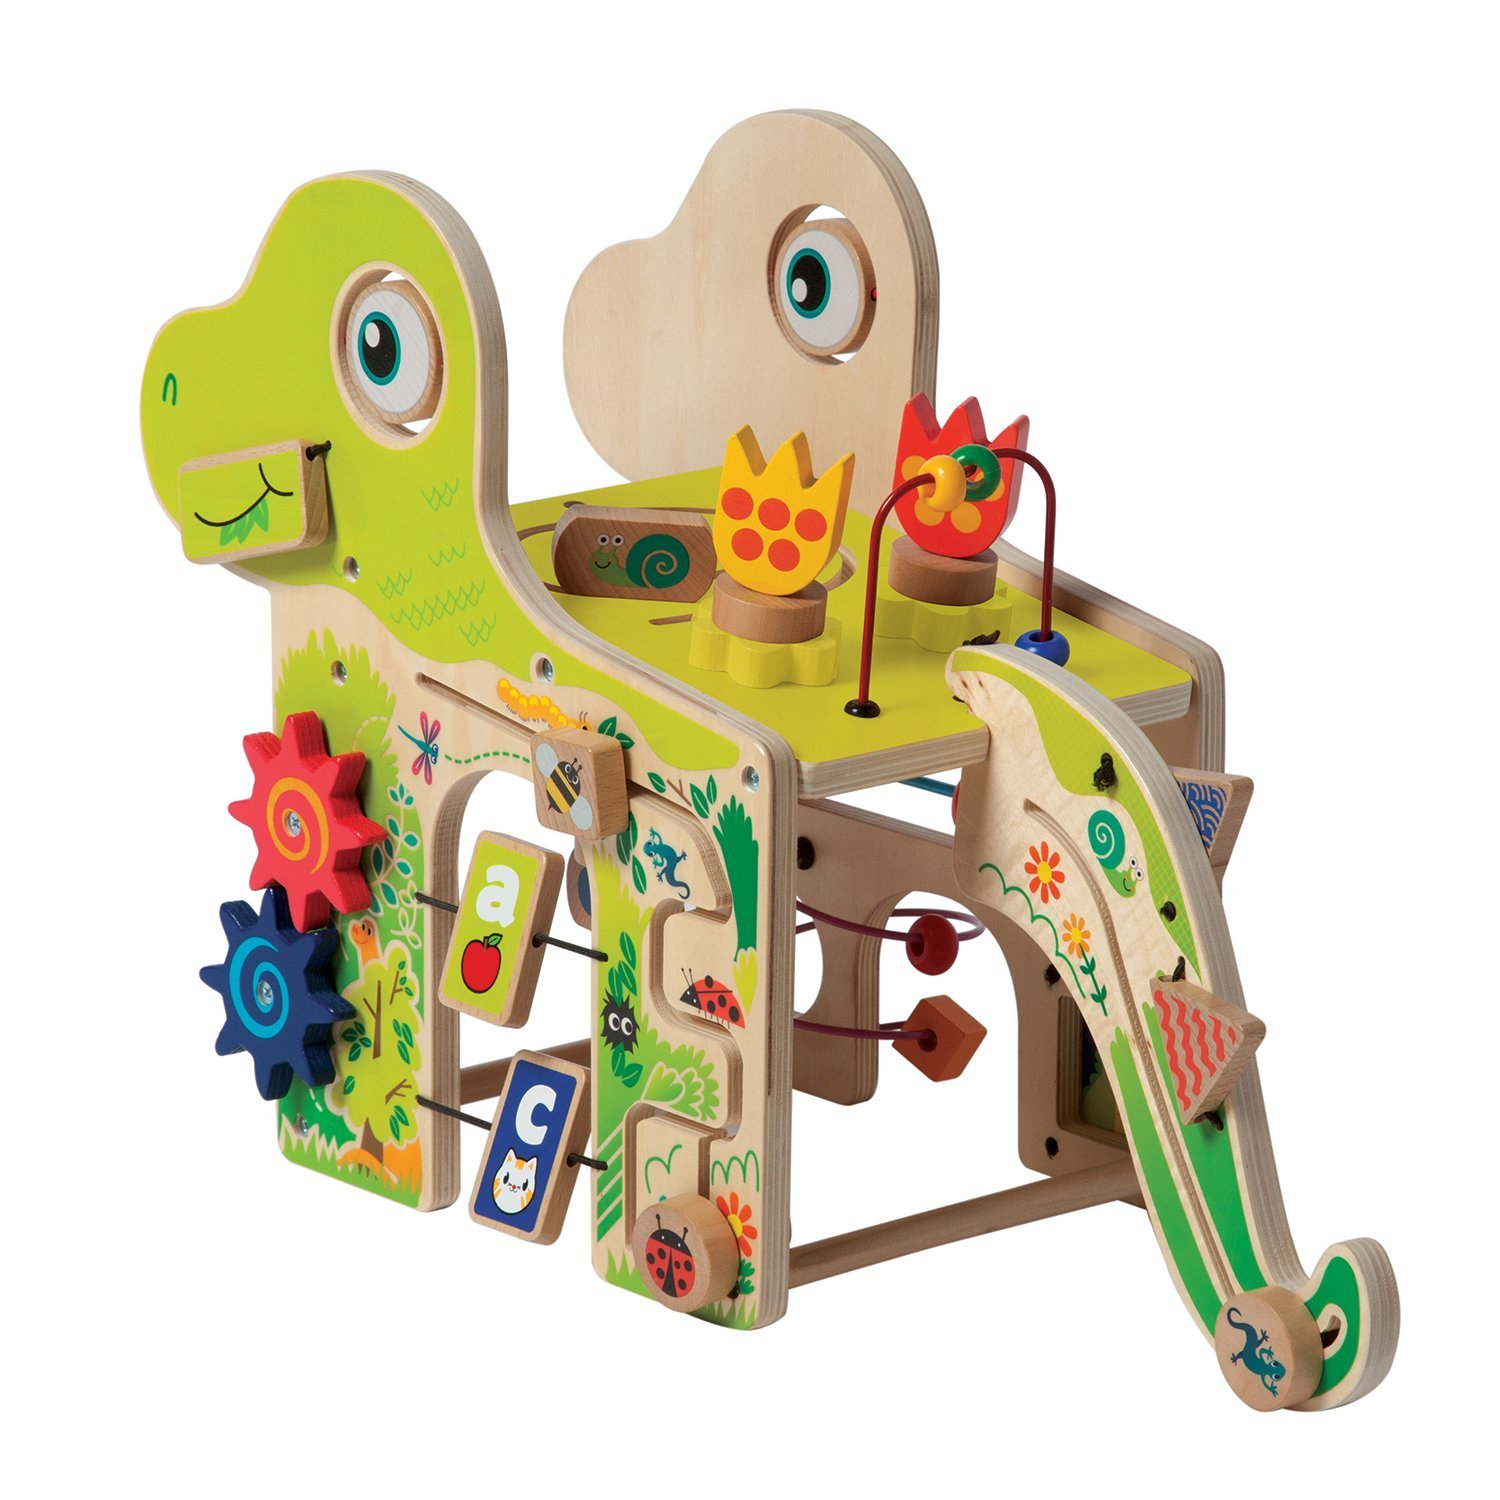 Manhattan Toy Playful Dino Wooden Activity Center Baby Toy